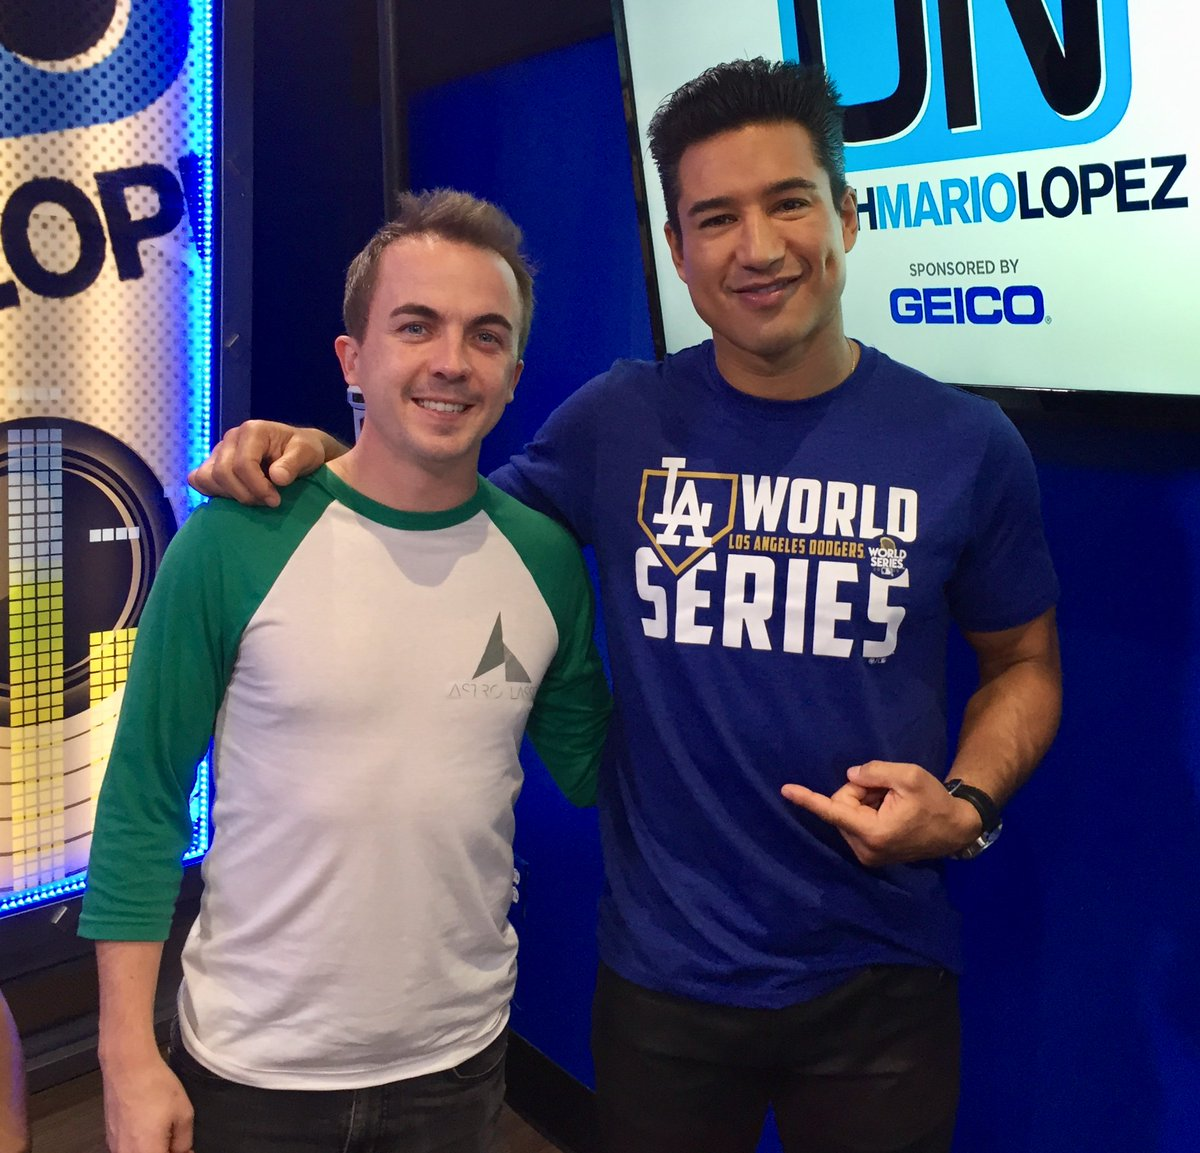 Coming Up @onwithmario -@frankiemuniz stops by to talk @DancingABC,  @justinbieber&#39;s aggressive new ink, #SuperBowl rumors confirmed &amp; more! <br>http://pic.twitter.com/XeWBTXchie